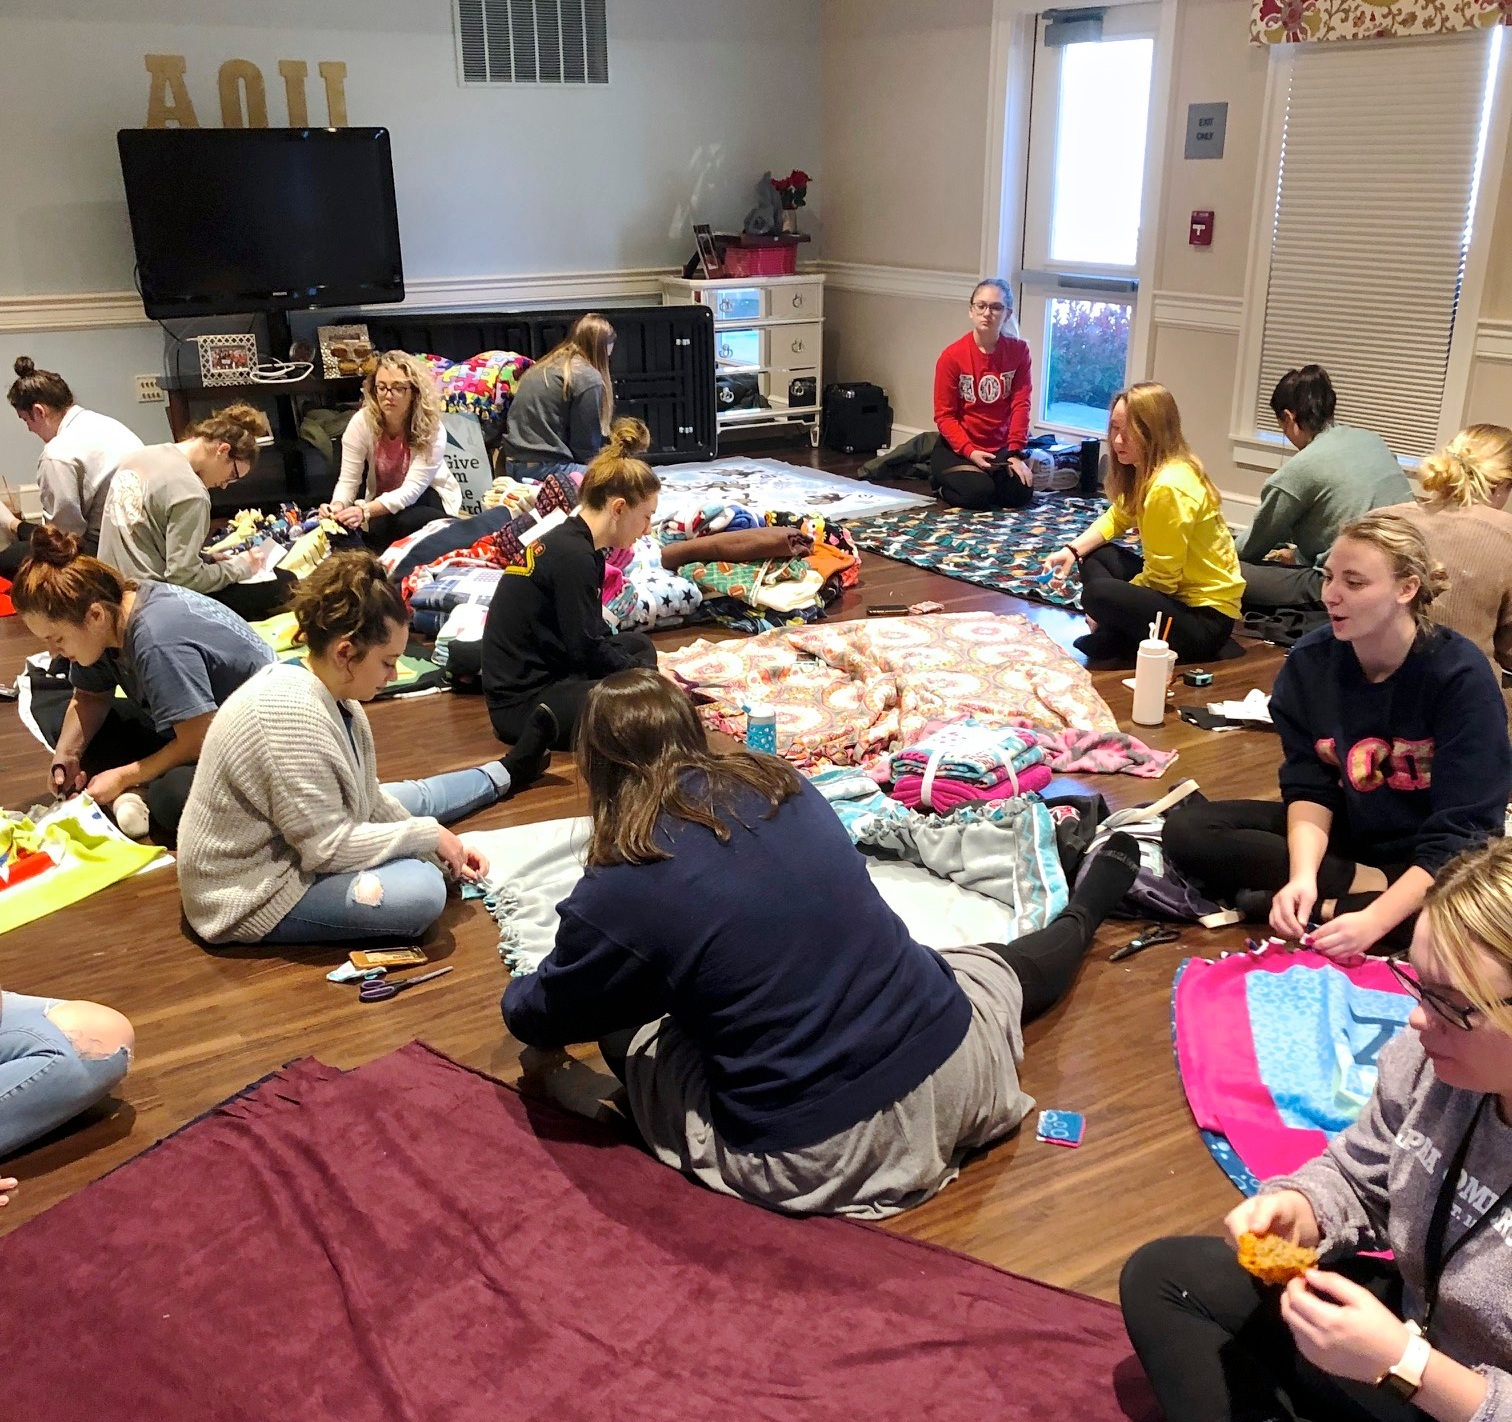 These amazing young ladies from Alpha Omicron Pi, Bowling Green State University in Ohio made 74 Fleece Blankets for HopefullRI. They fundraised, had meetings, purchased fleece, made blankets, shipped all the blankets to Rhode Island and studied! Wow we are so grateful to AOII at BGSU!